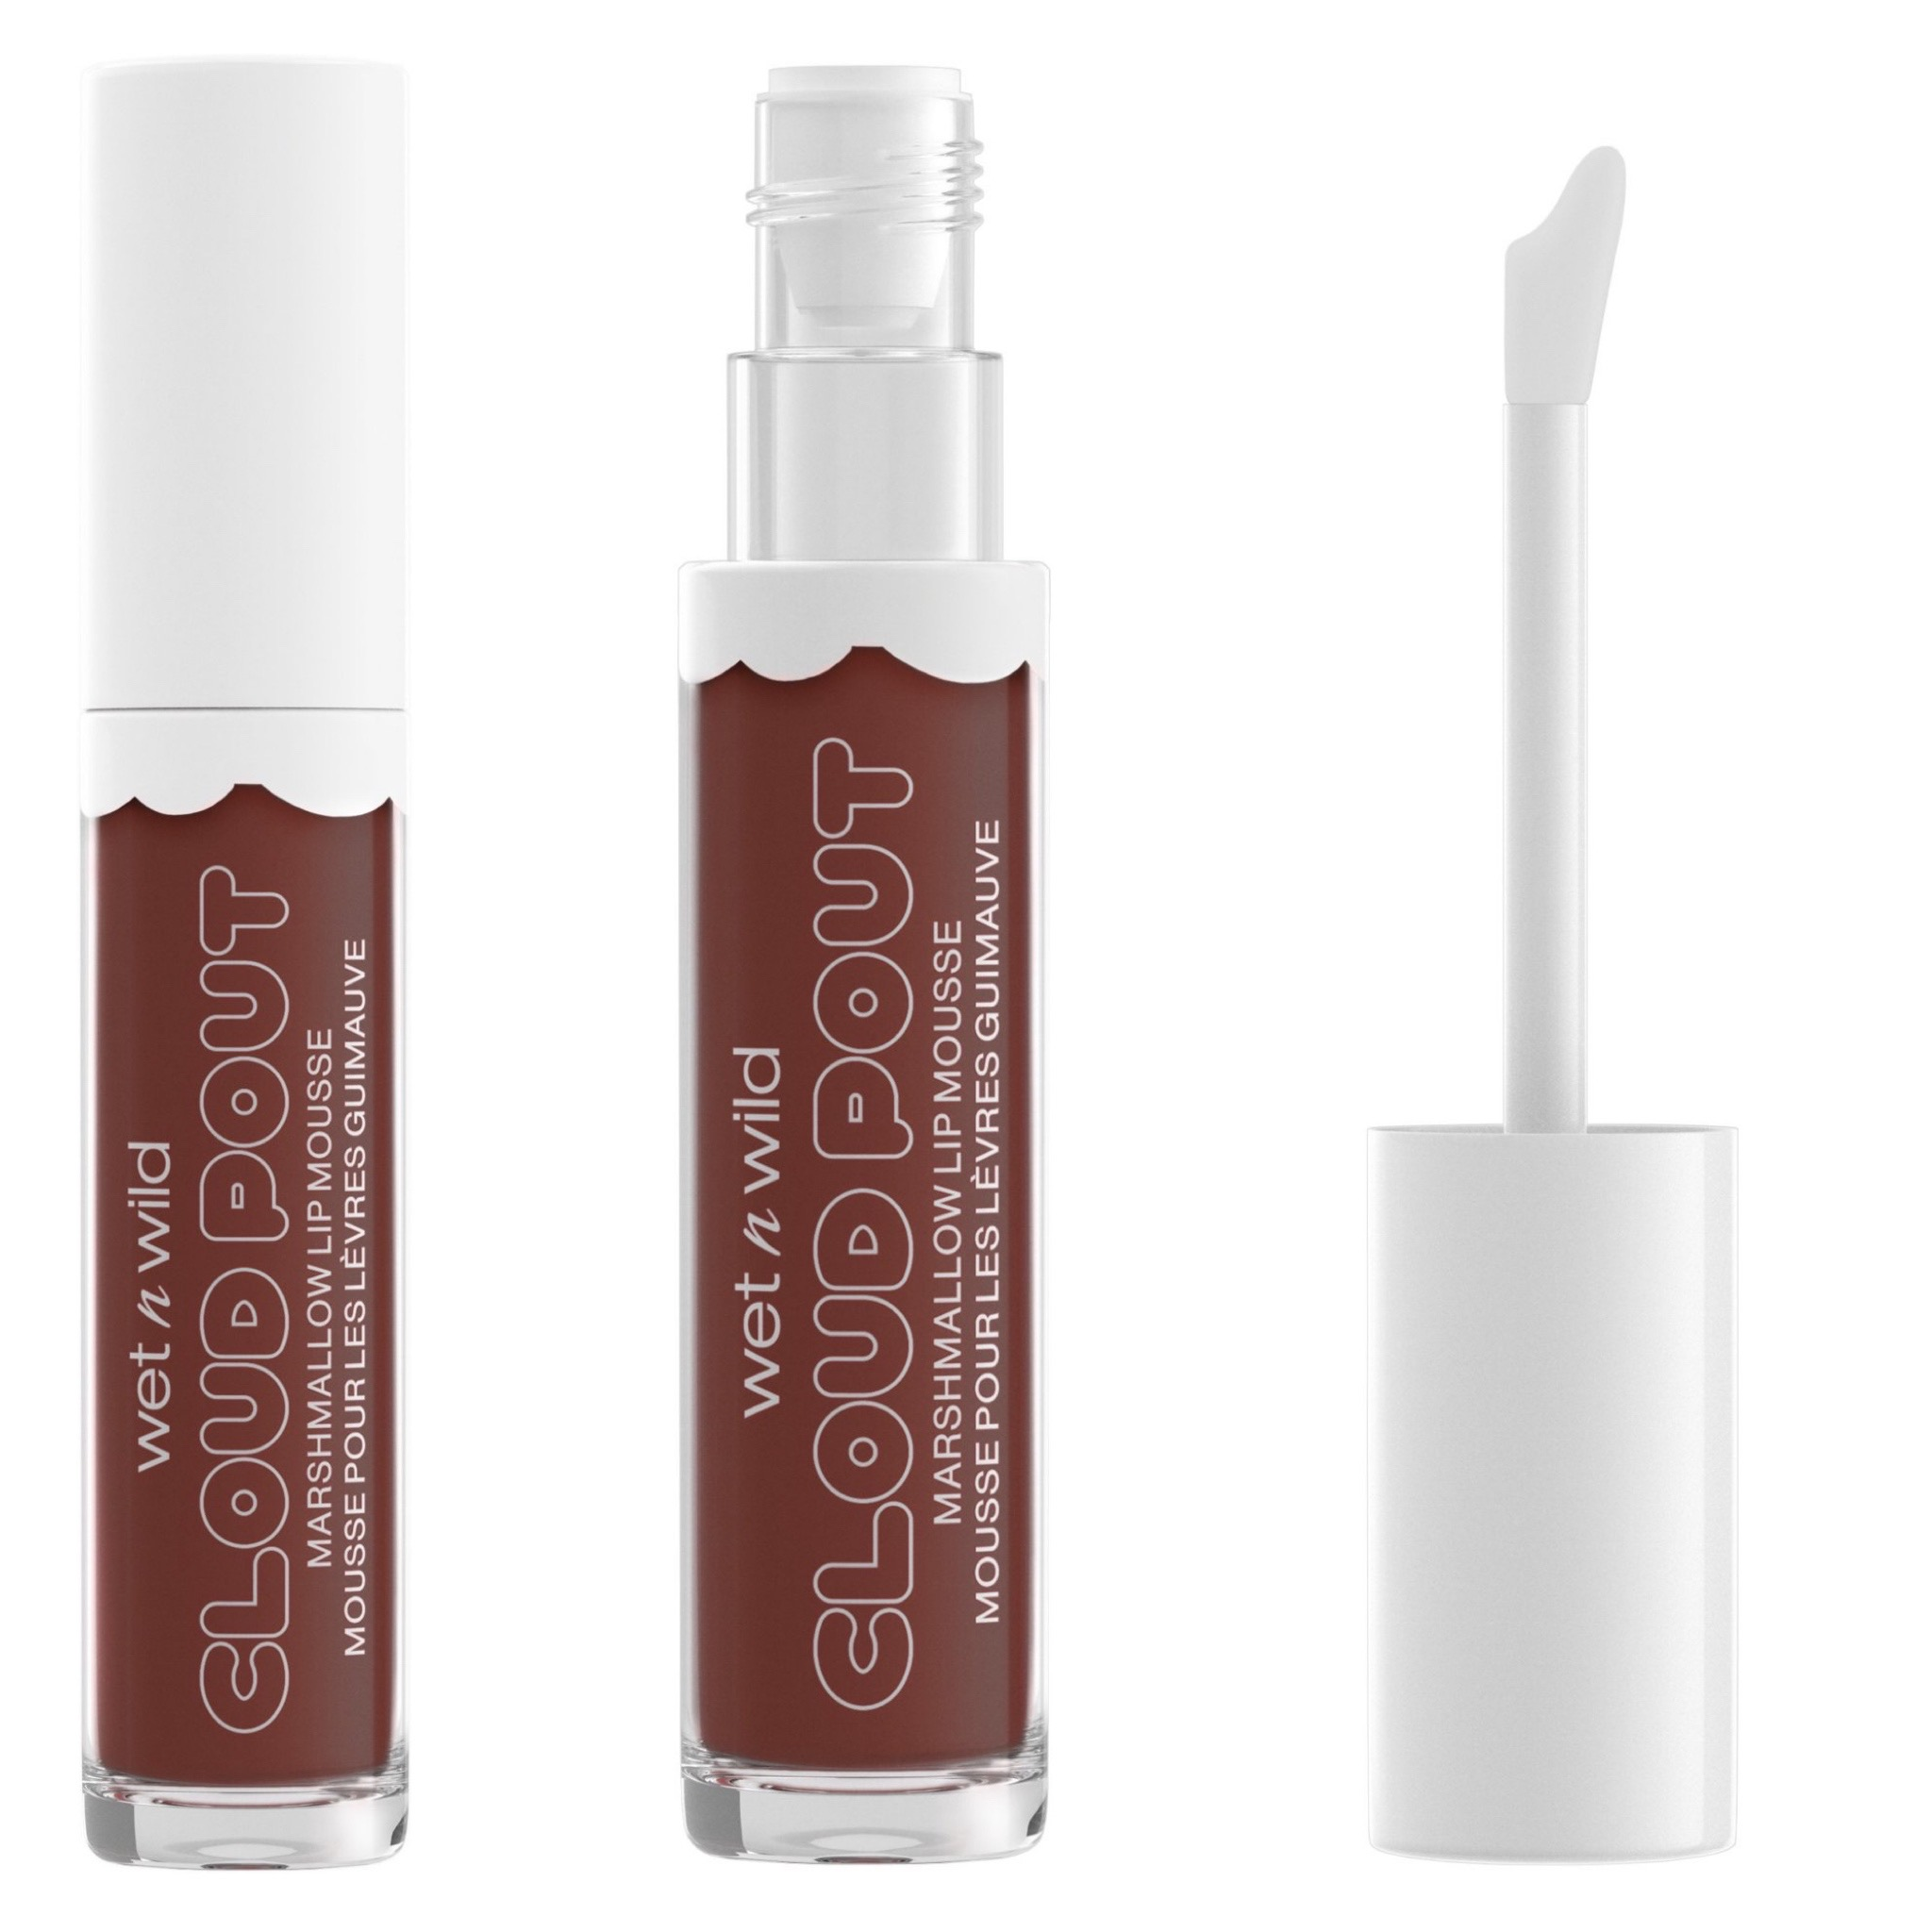 Wet n Wild Cloud Pout Marshmallow Lip Mousse